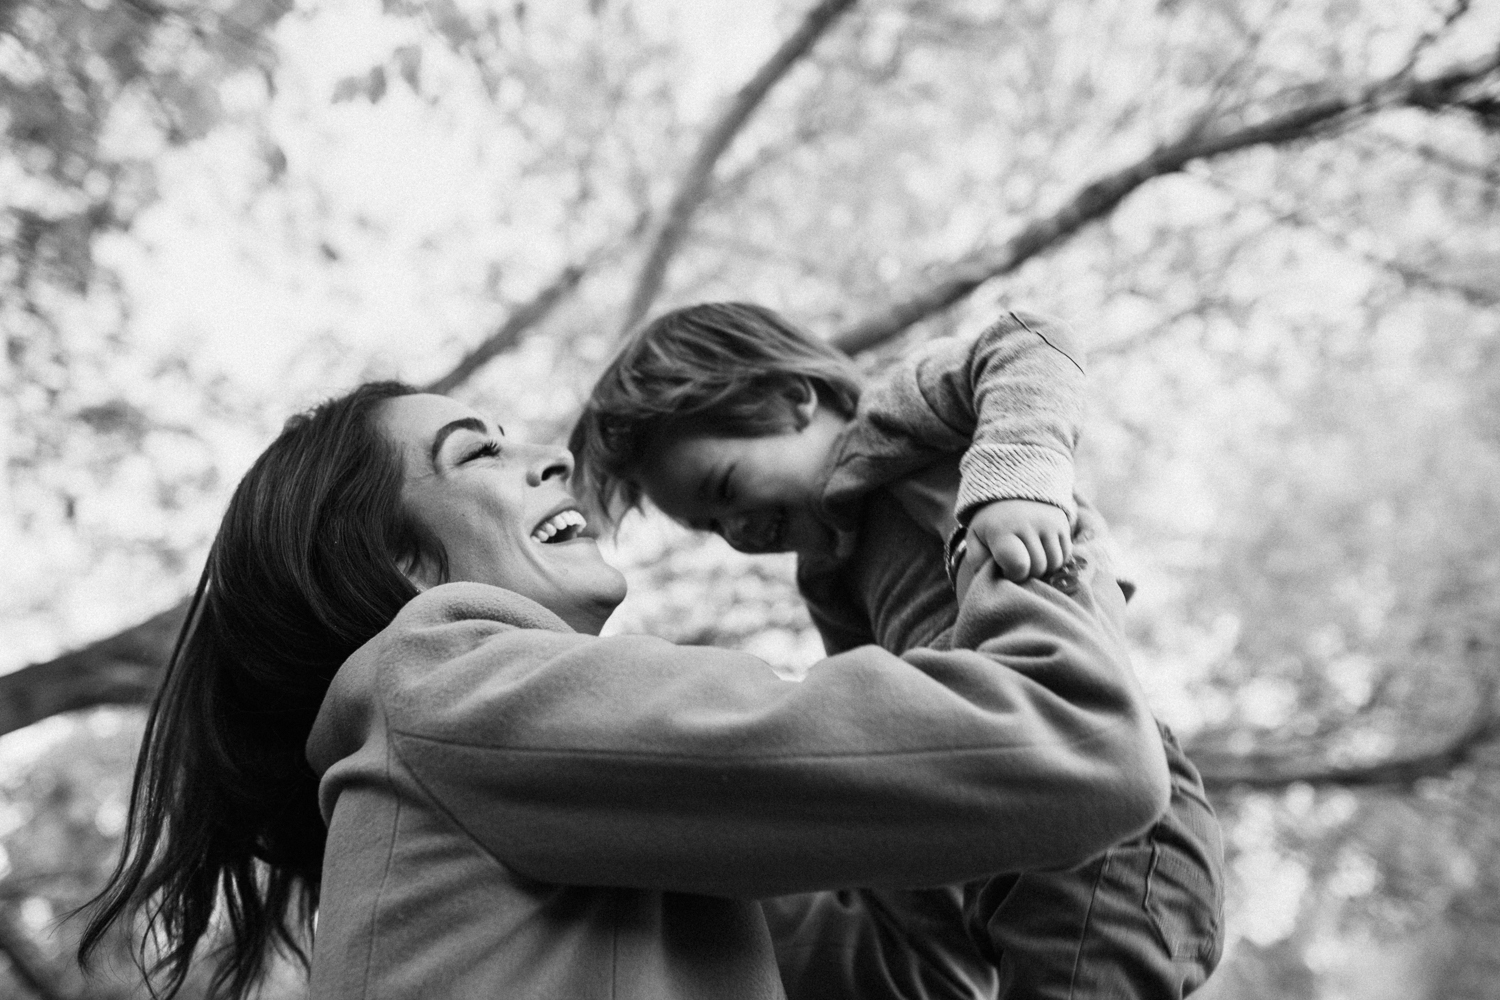 black-and-white-candid-photo-of-mother-playing-with-son-in-fall-leaves-during-free-family-portrait-session-with-jen-fairchild-photography-in-slc-ut